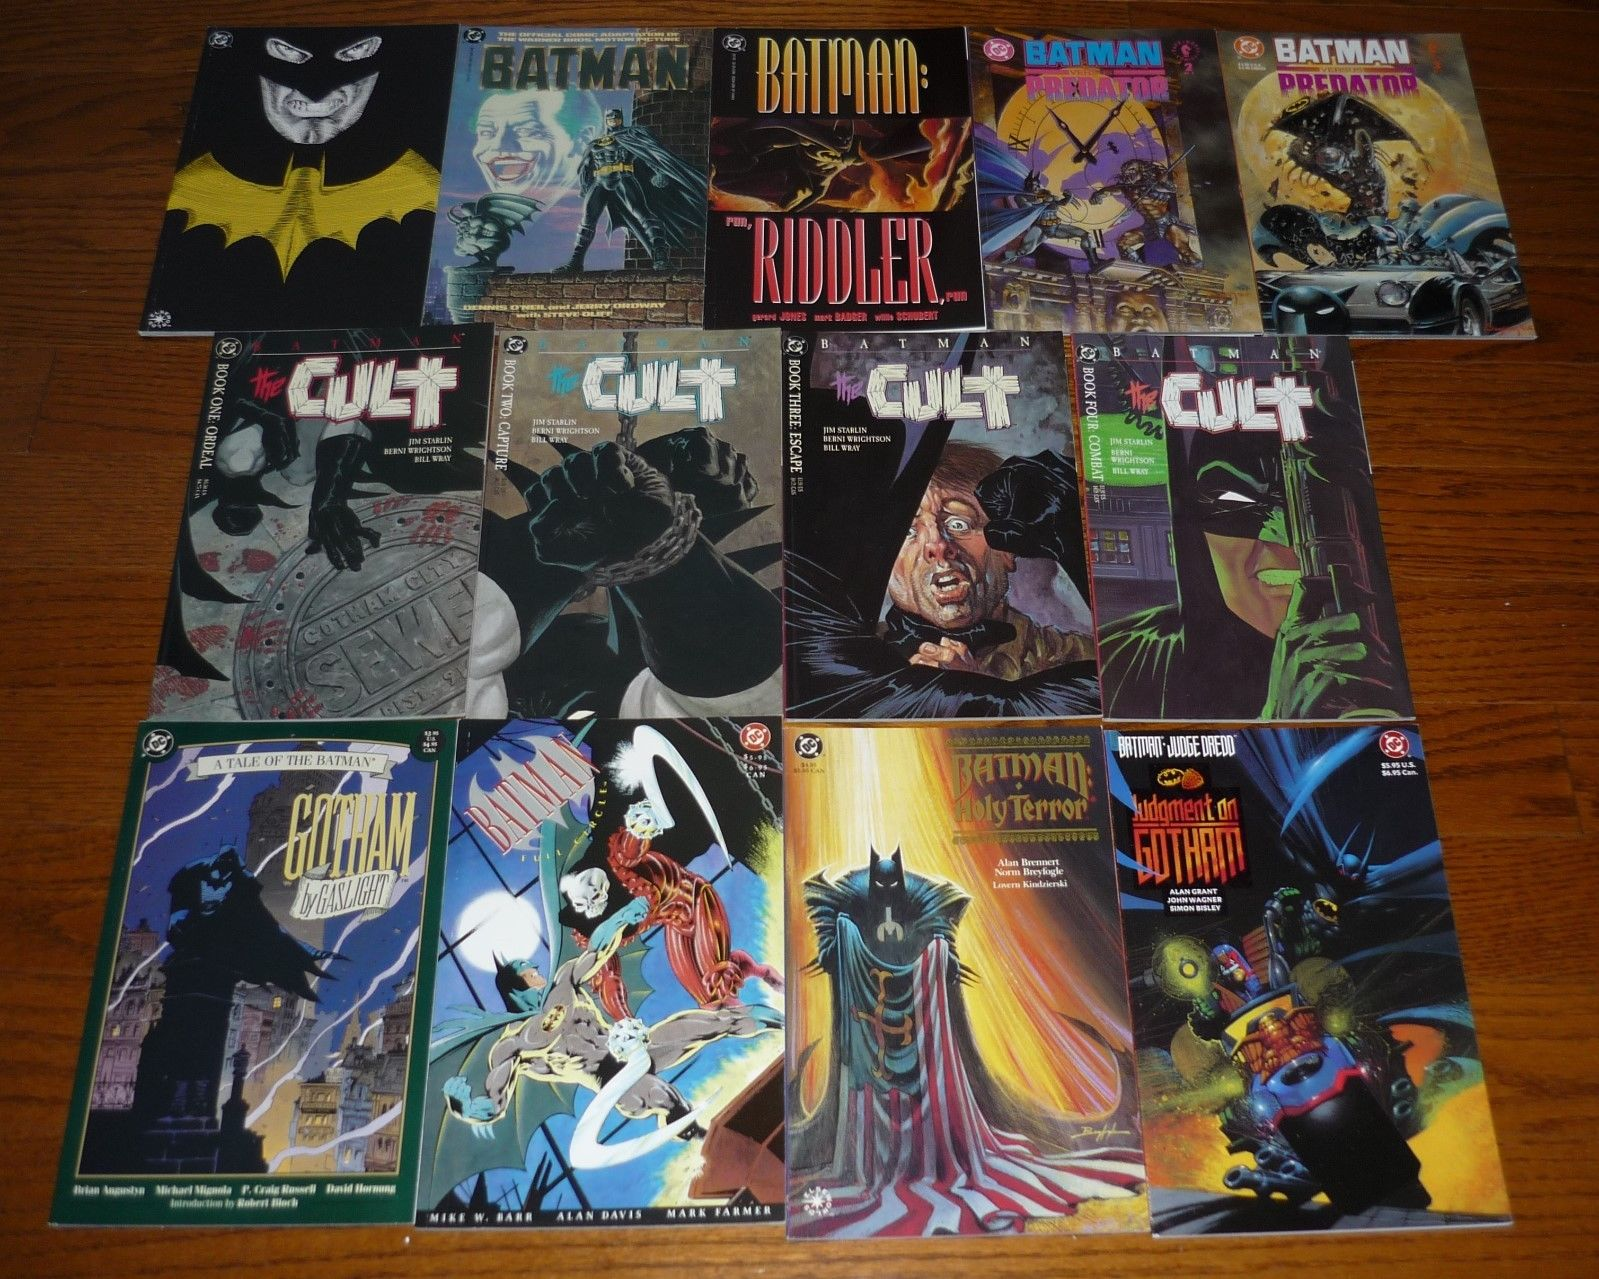 Lot of 13 Batman deluxe Comic Books The Cult # 1-4, Holy Terror, +++ Squarebound